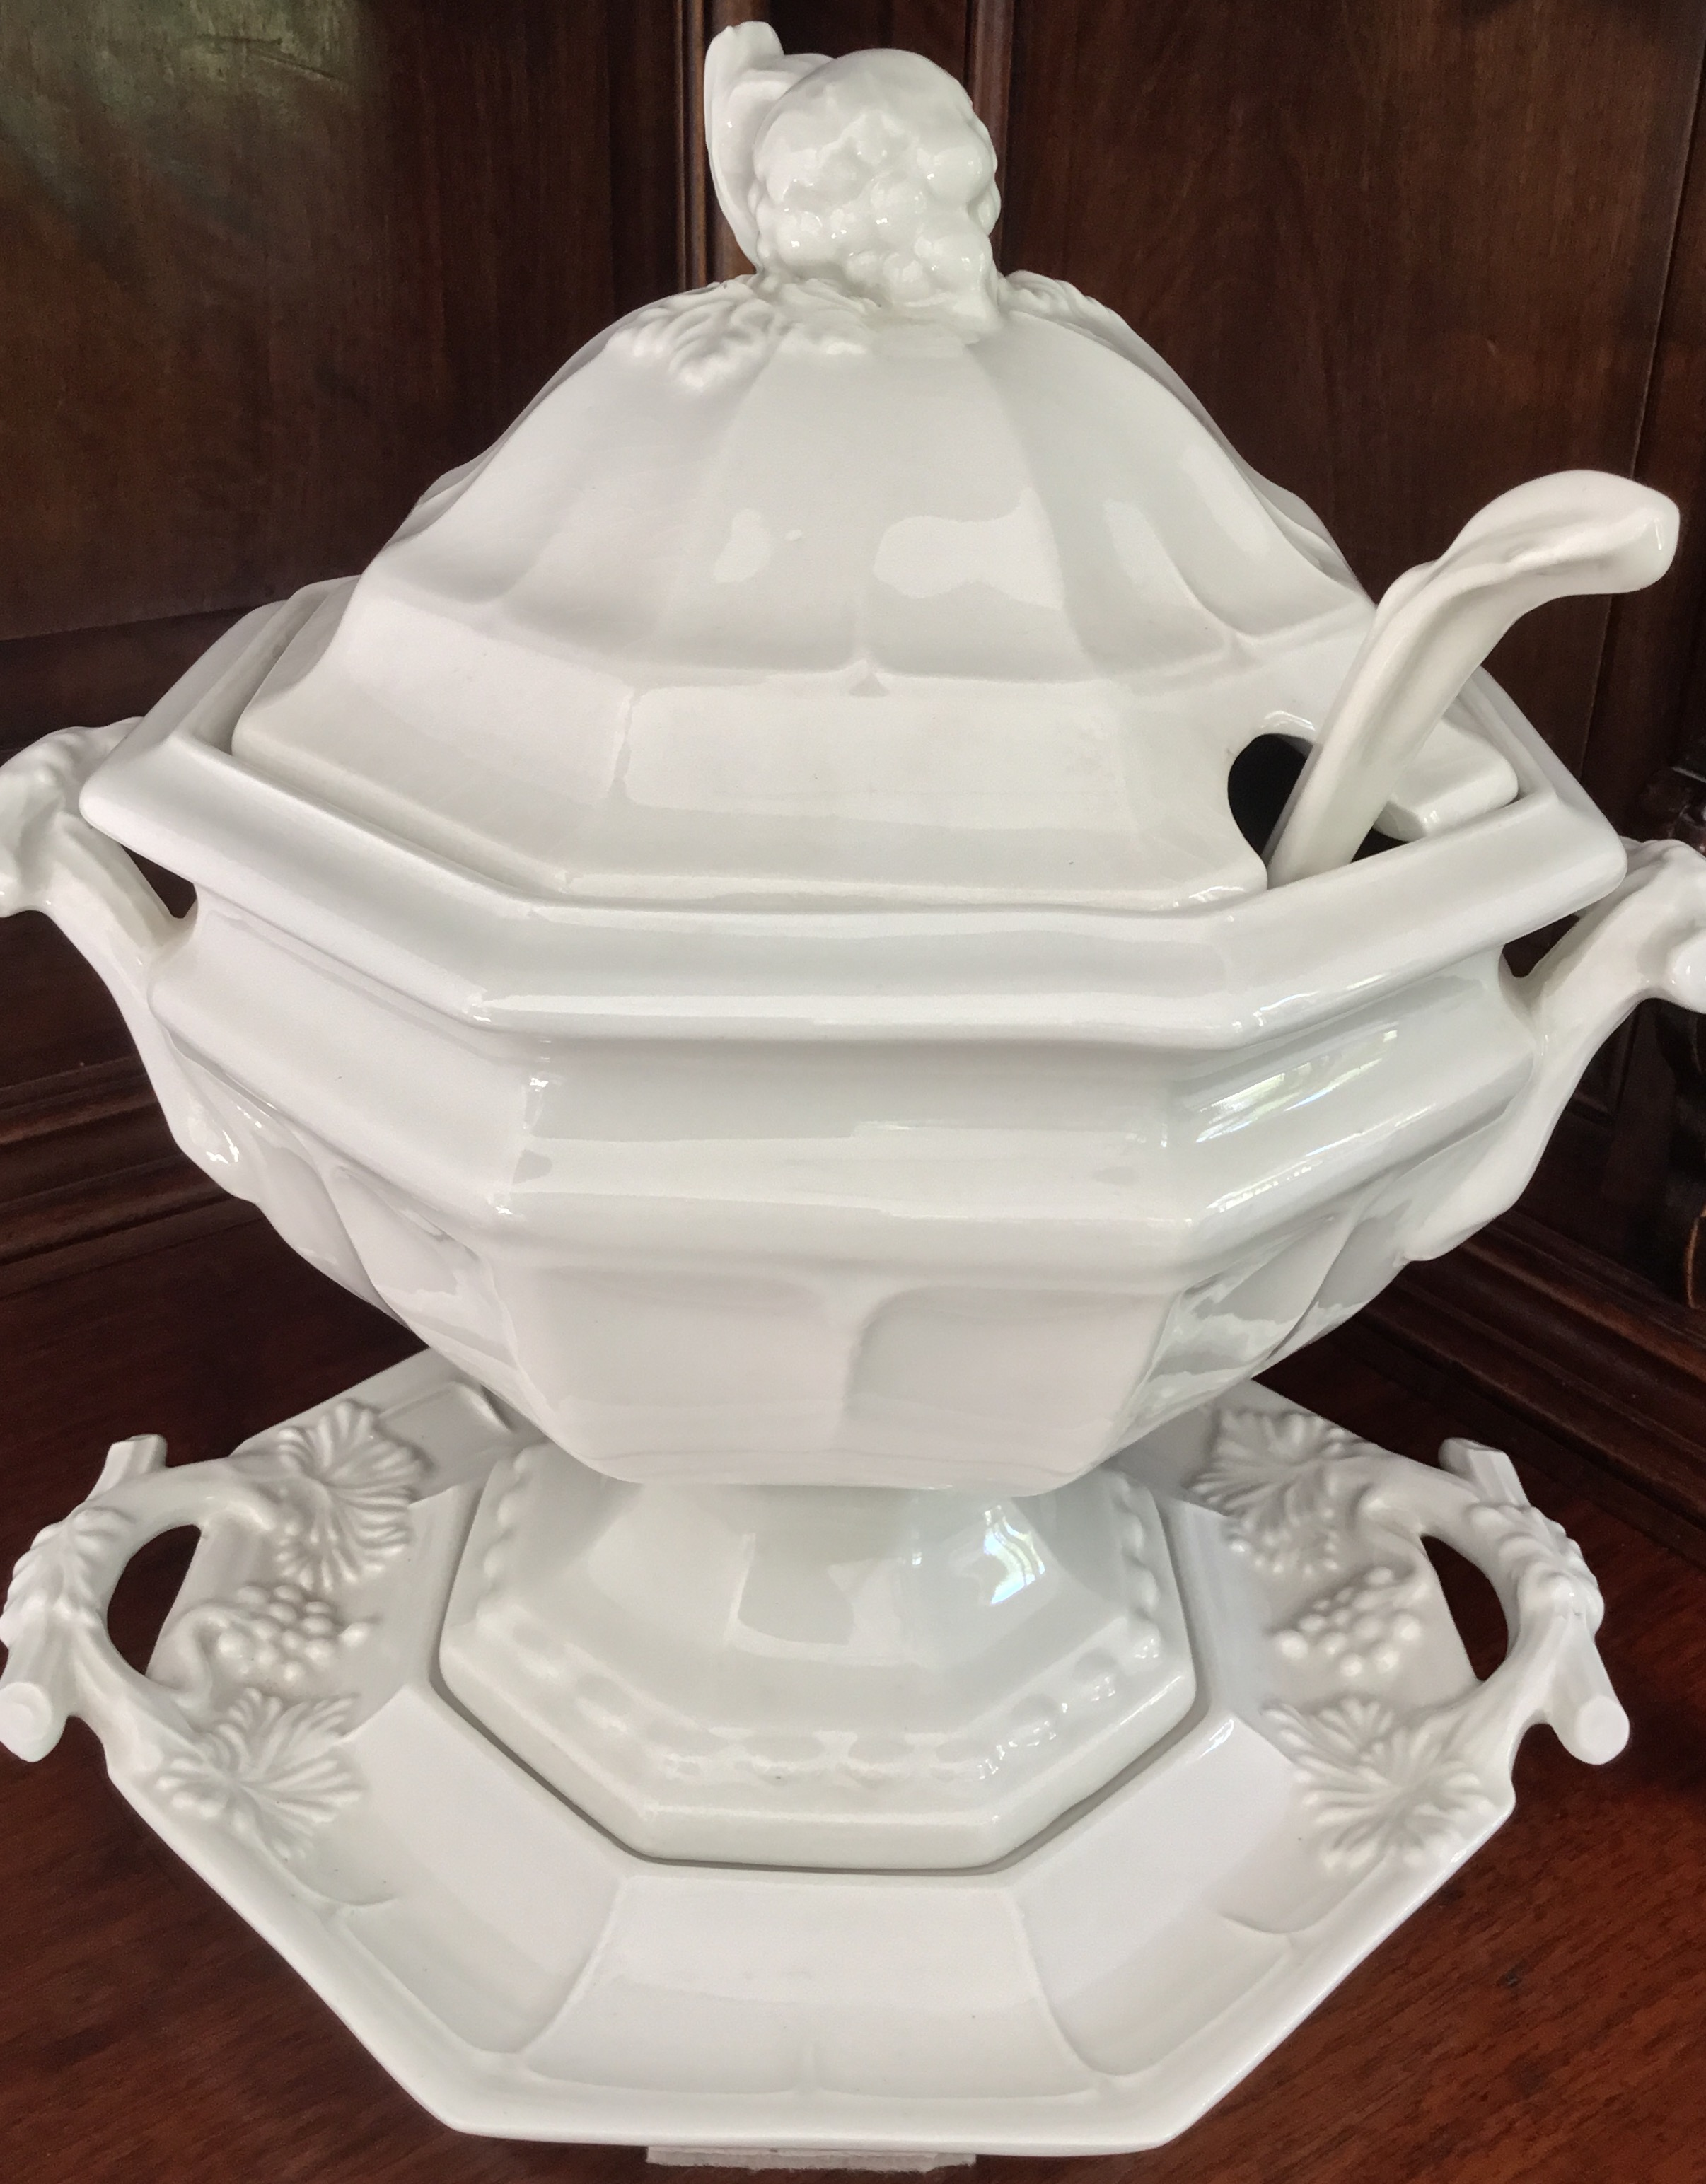 Red Cliff Ironstone Tureen, Ladle, and Stand